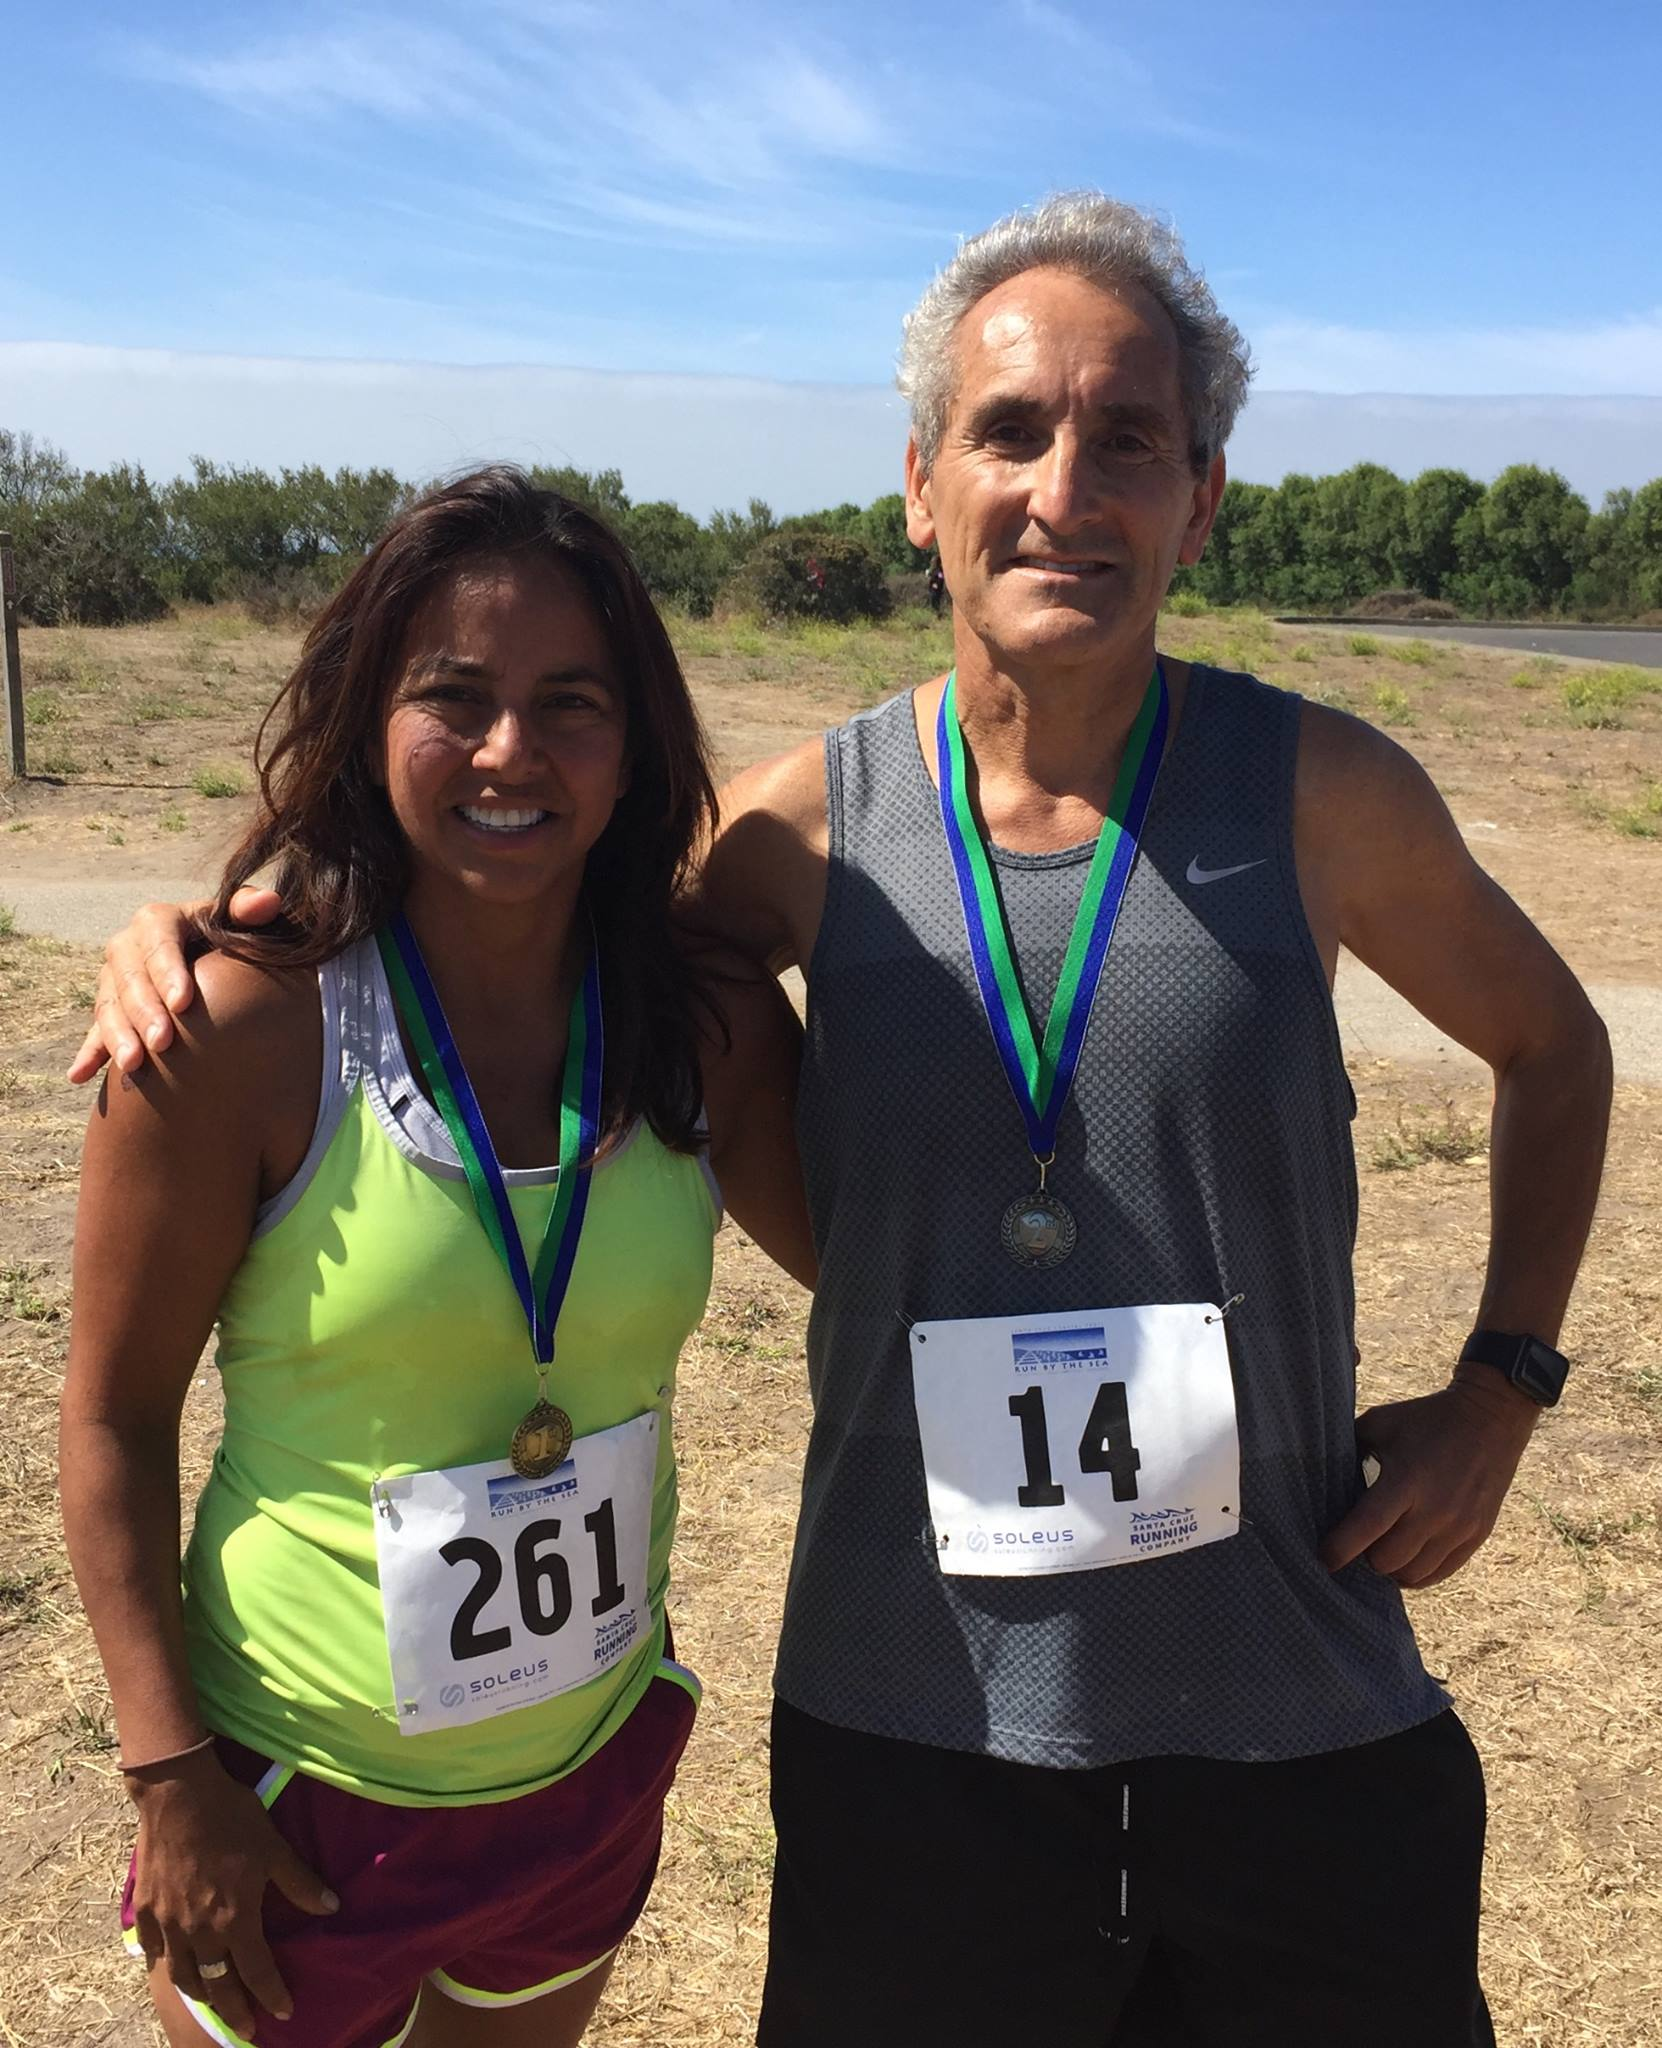 Connie & Friend Race by the Sea 12K Santa Cruz